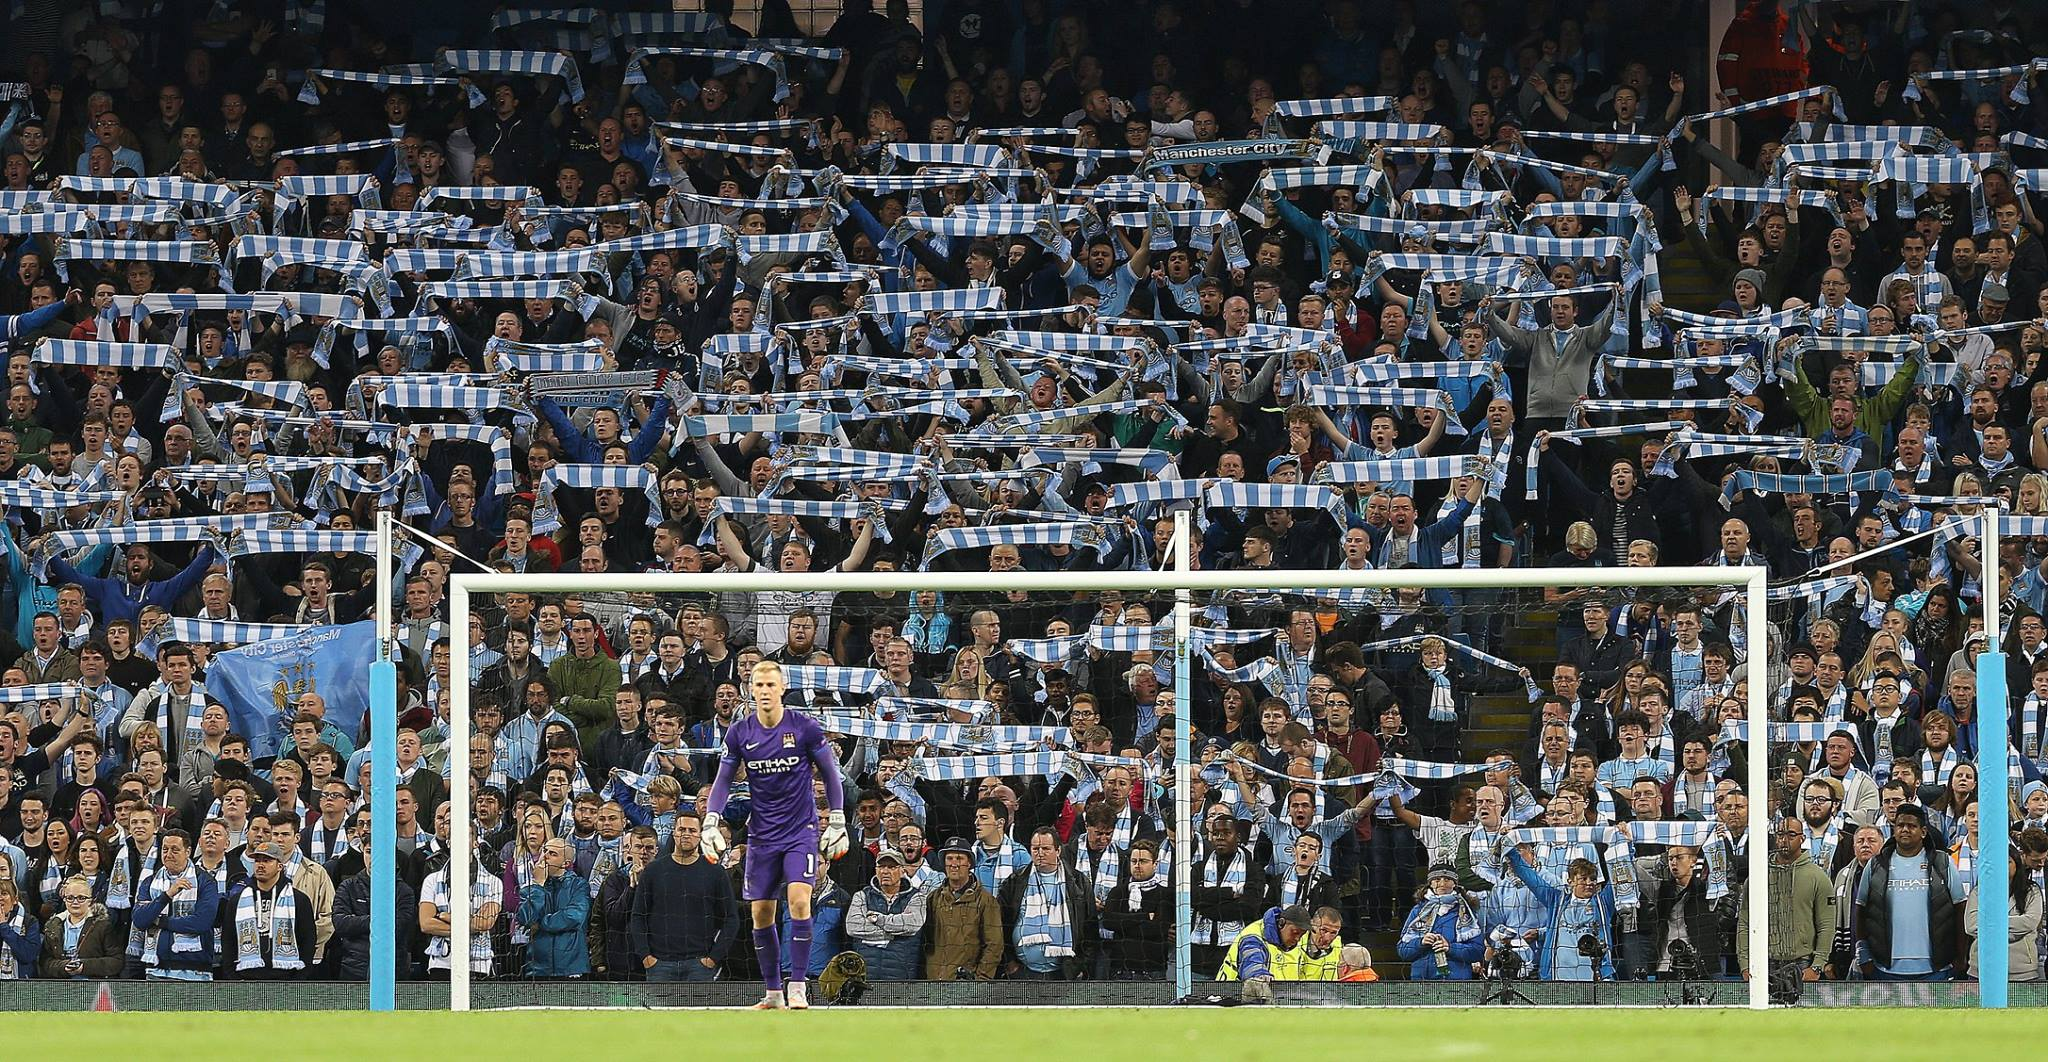 Can we have some more please? Let's make the Etihad a cauldron of noise and a vision of sky blue & white. Courtesy@MCFC